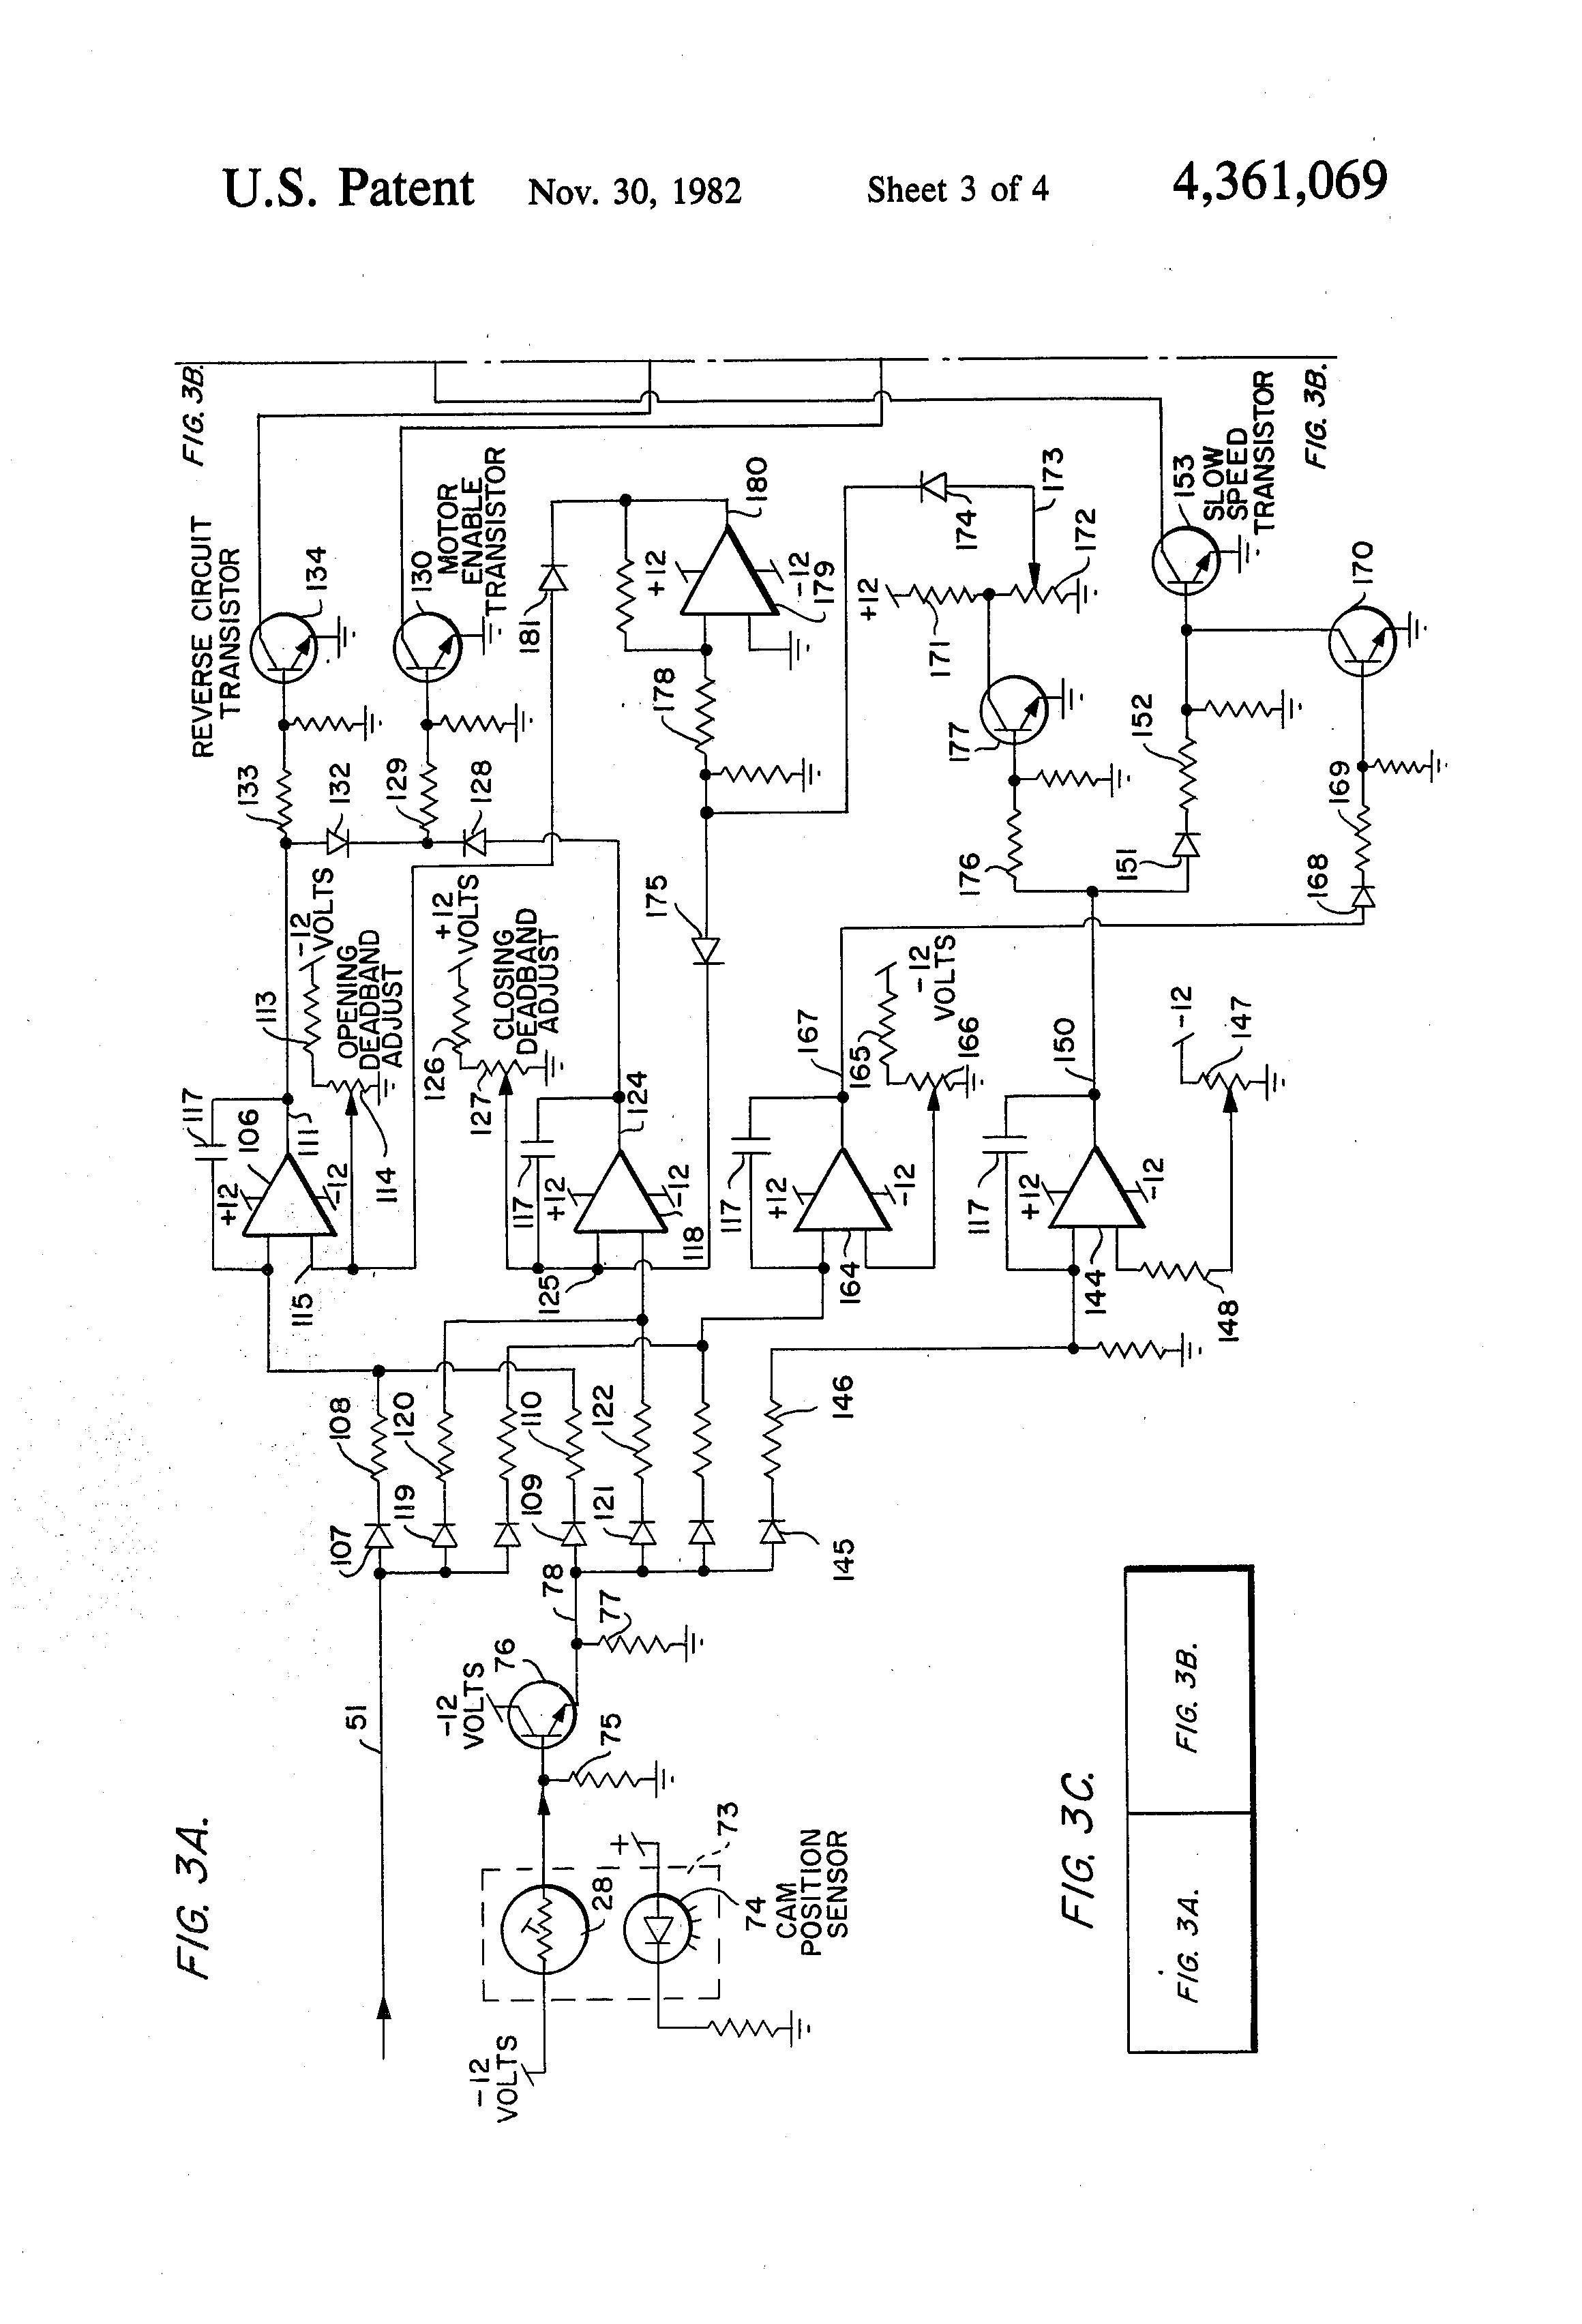 pipe organ wiring diagram industrial refrigeration